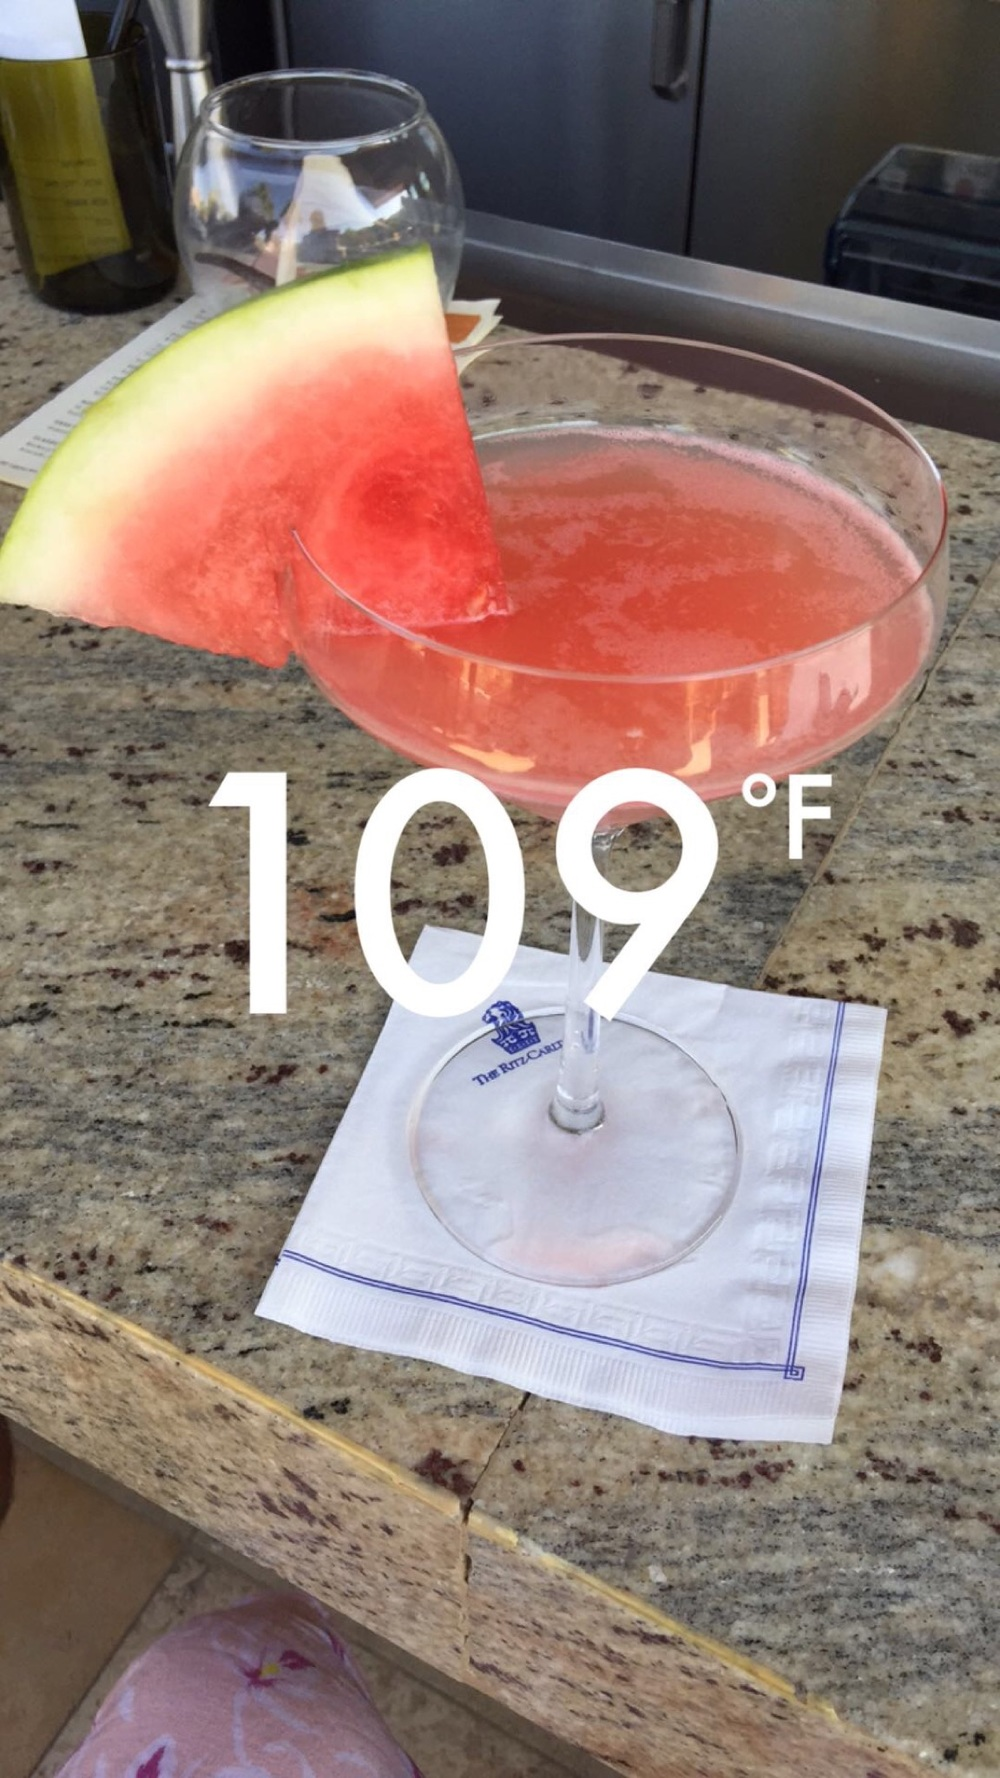 Twenty minutes later...109*, Watermelon specialty cocktail from State Fare bar